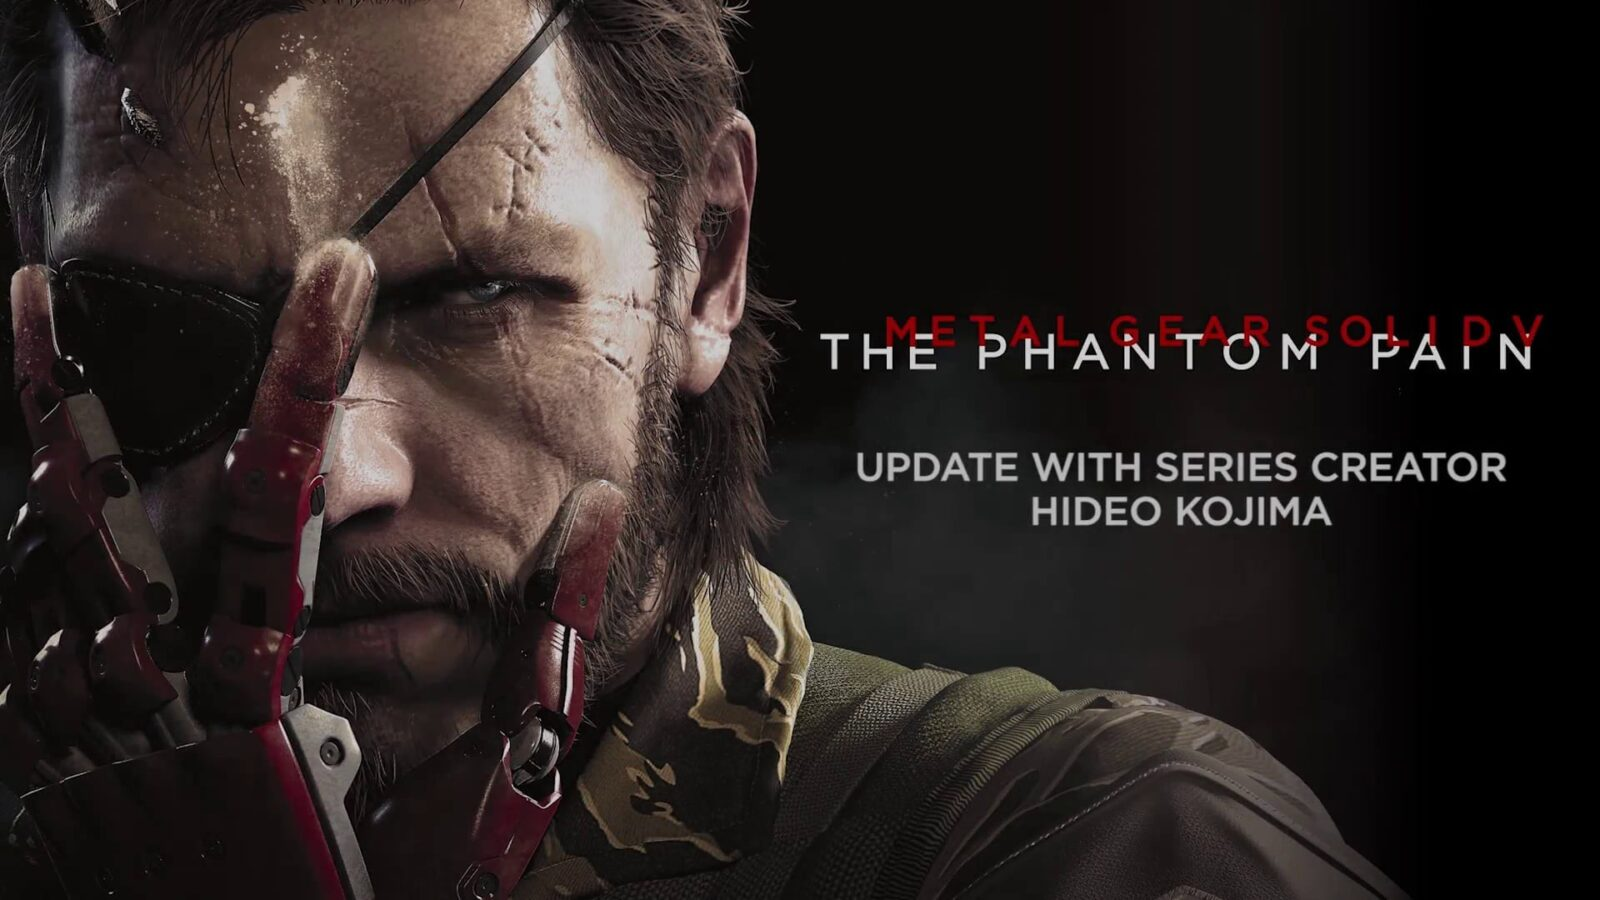 Metal Gear Solid 5 The Phantom Pain pictures